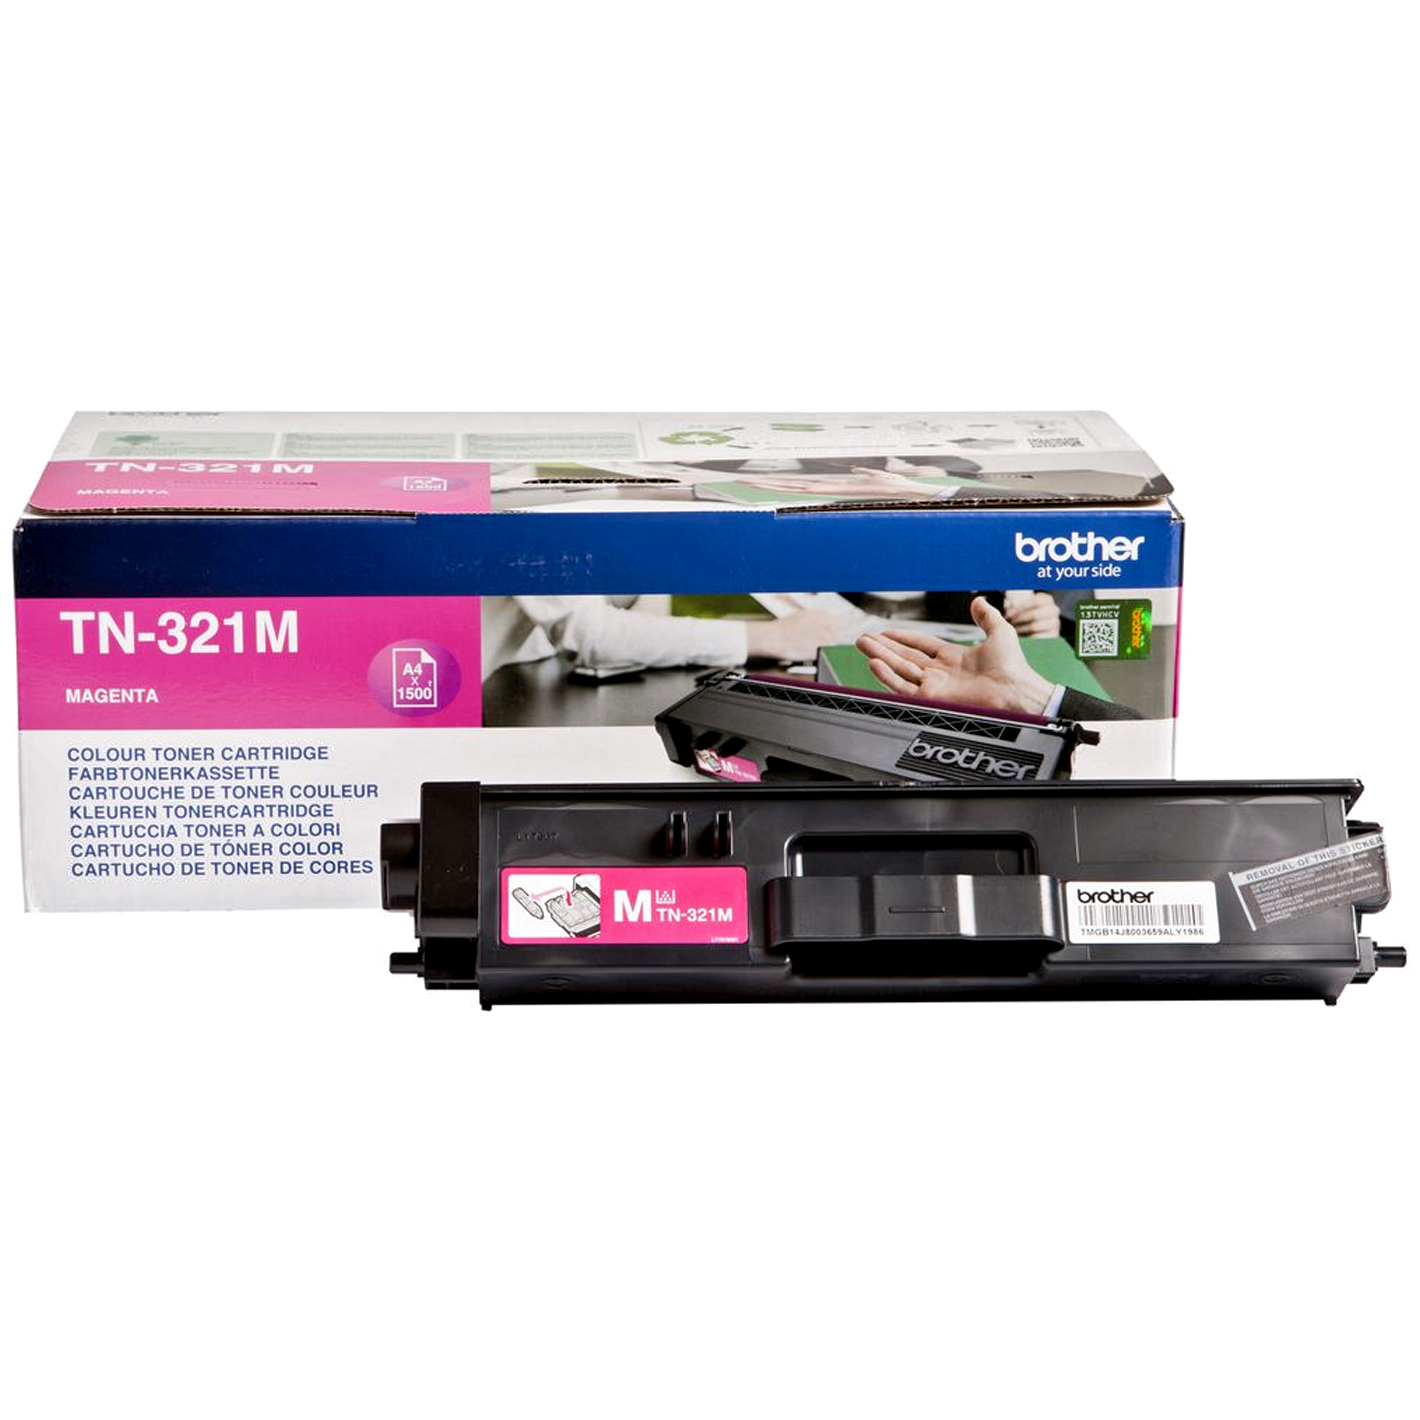 Brotn321m      Brother Tn321 Magenta Toner    1500 Pages                                                   - UF01